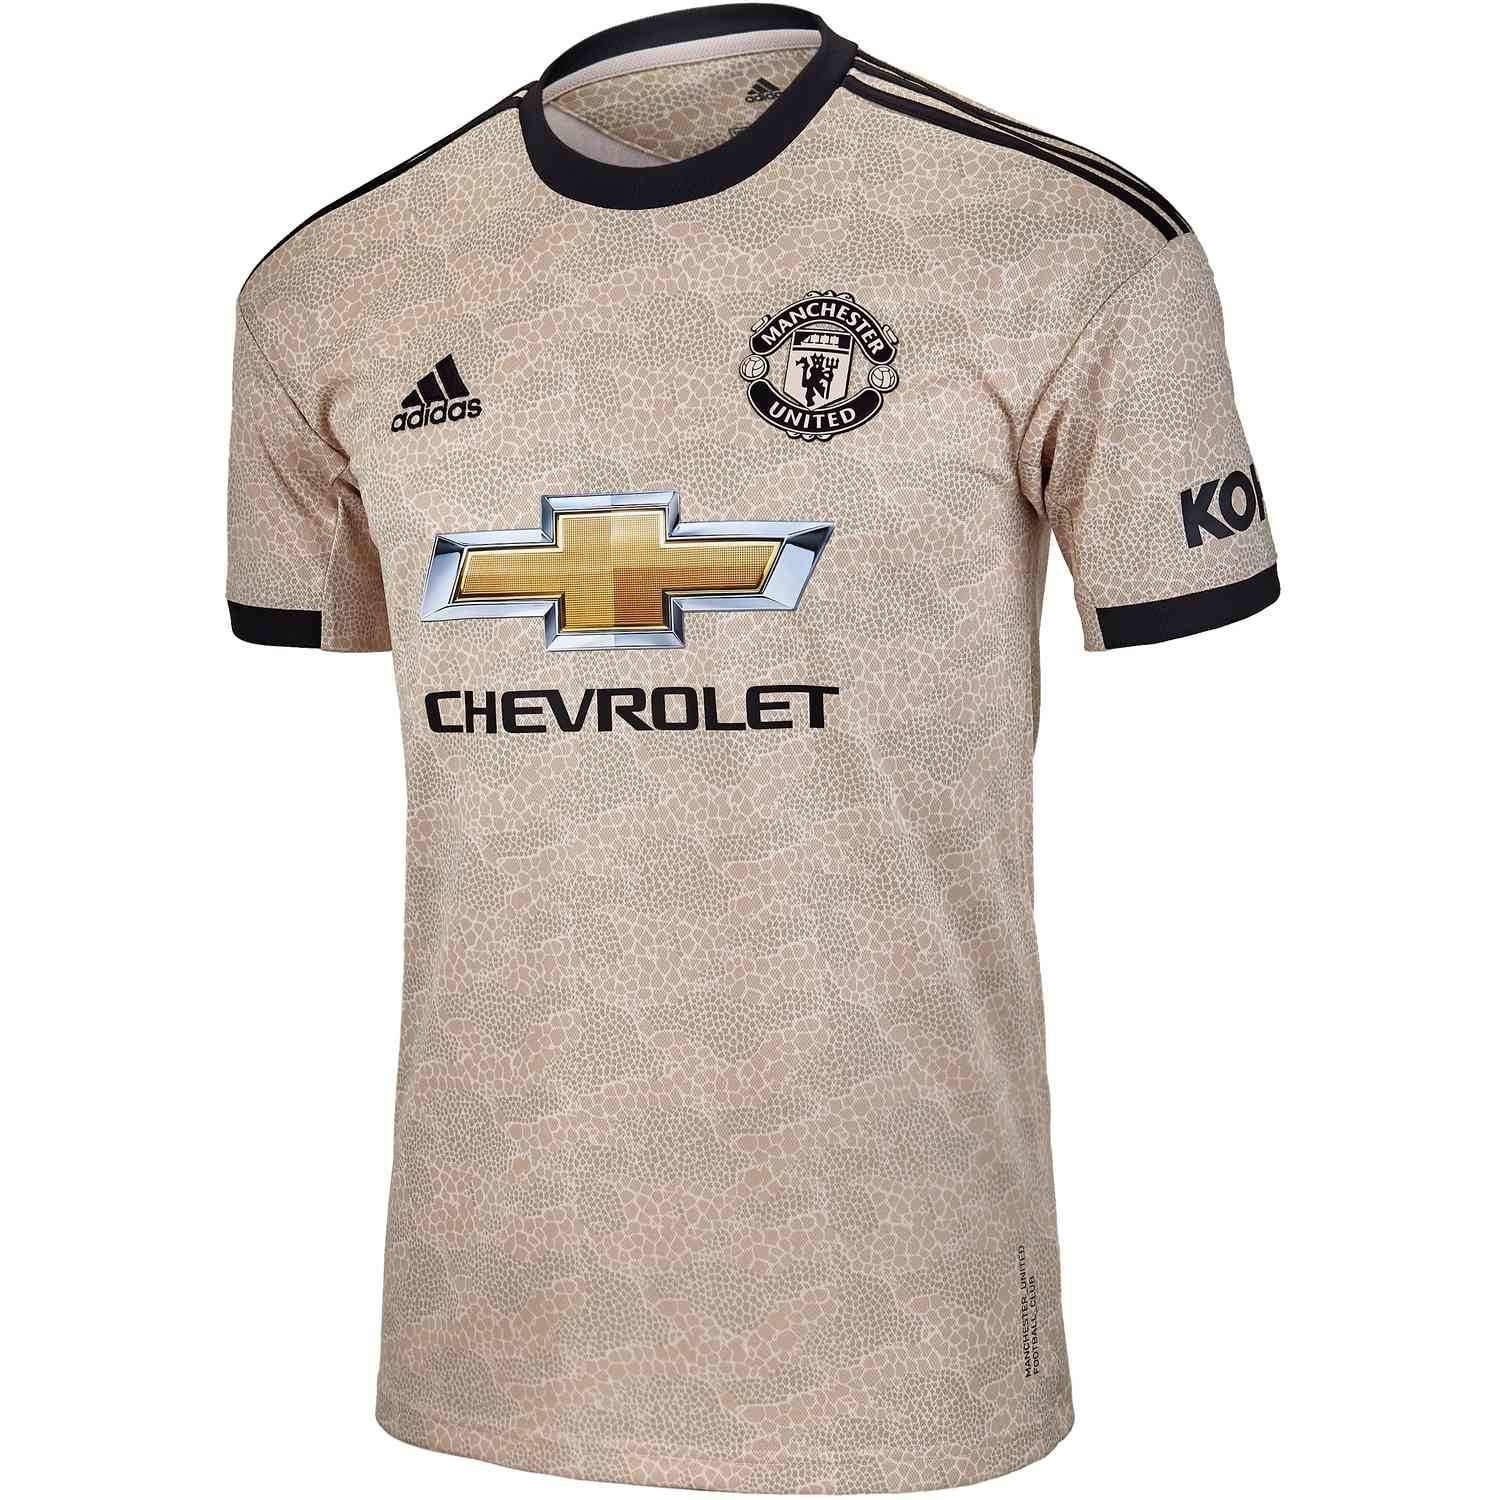 Adidas ADIDAS Manchester United Away Jersey '19-'20